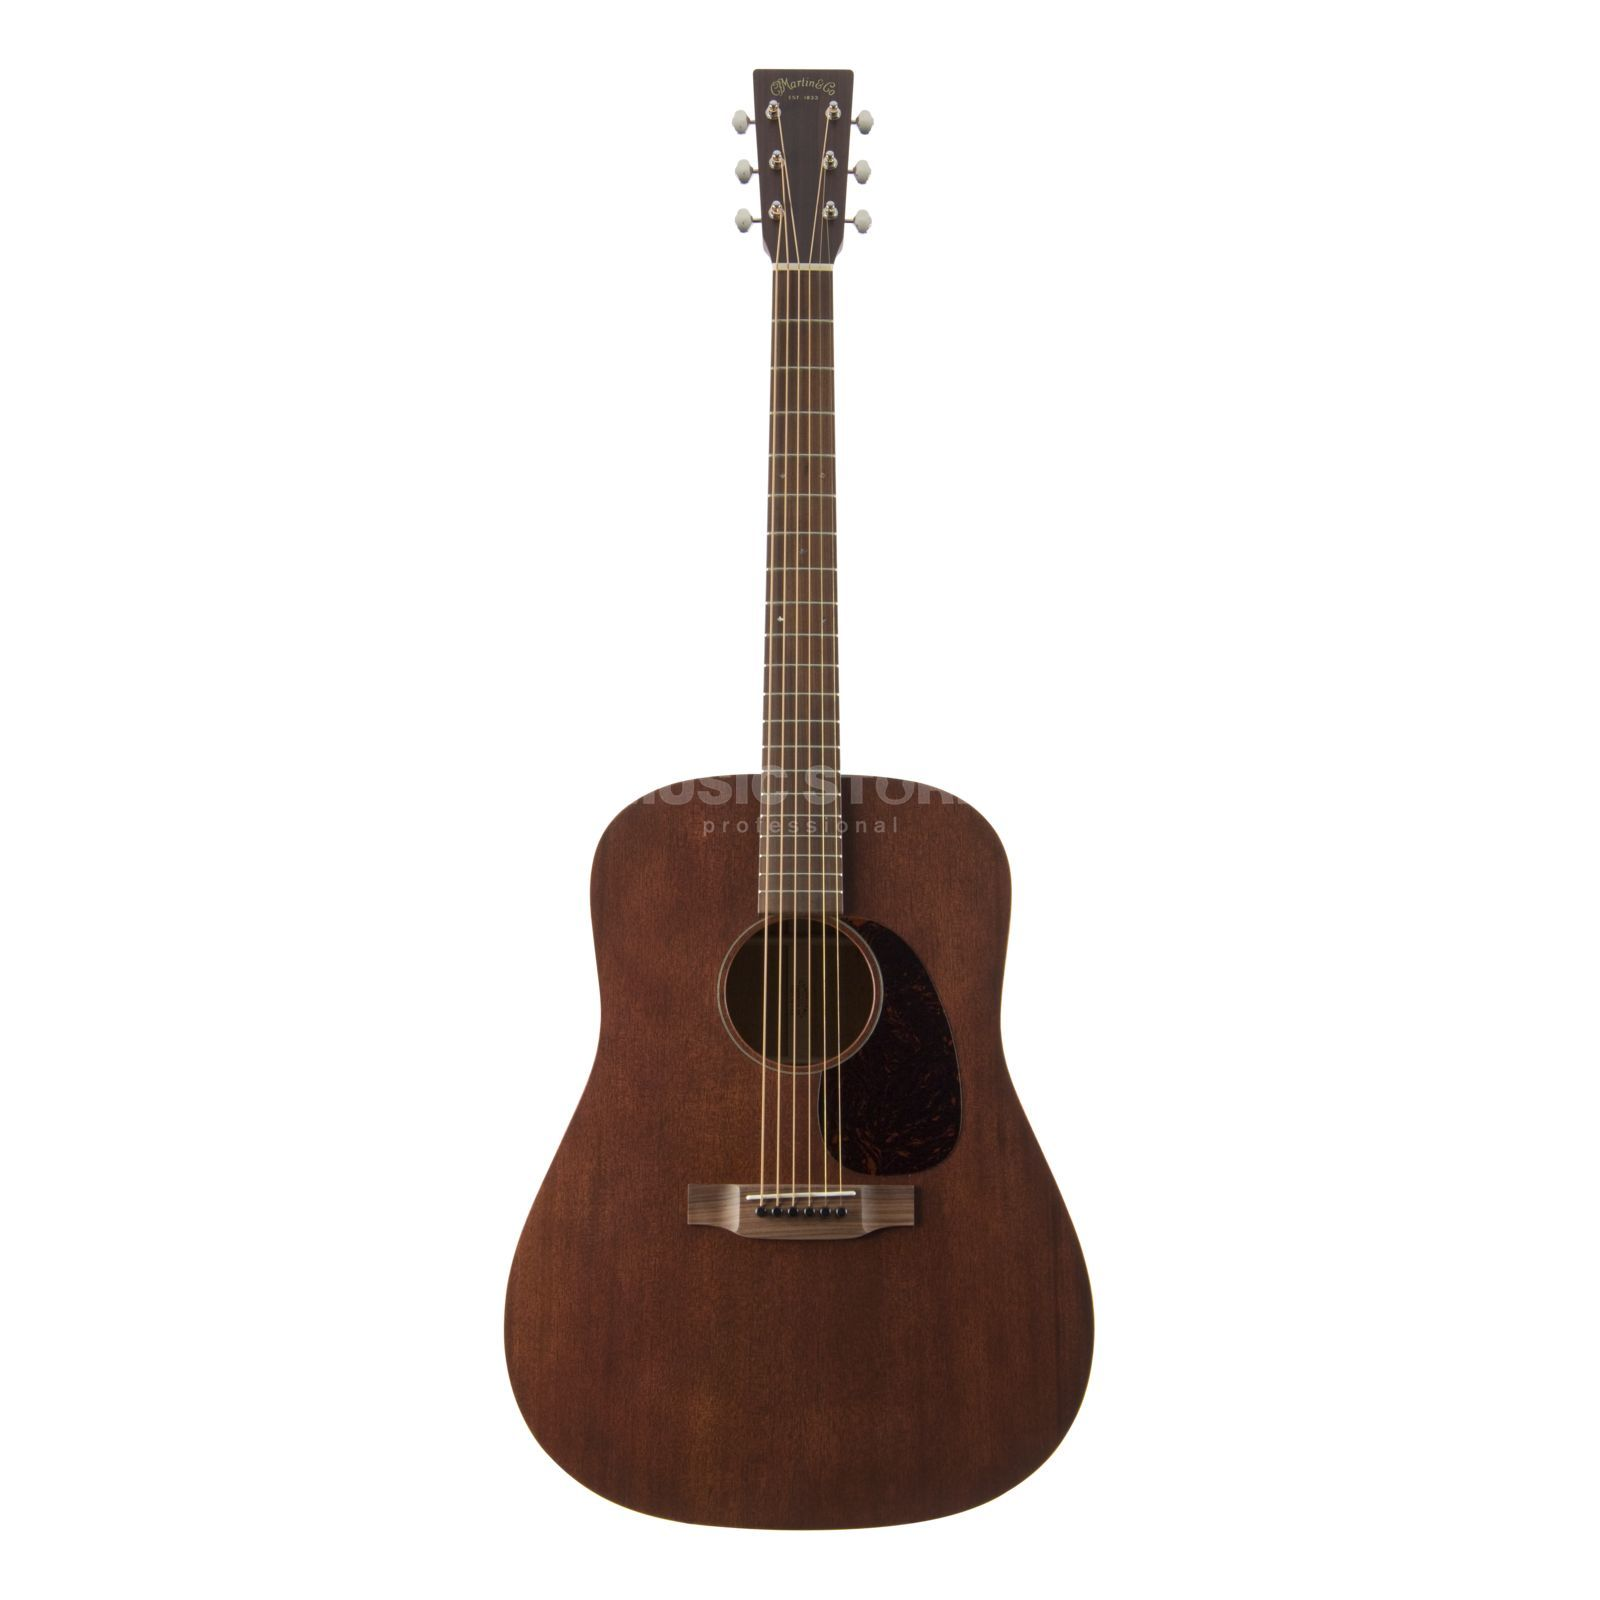 Martin Guitars D-15M Natural Изображение товара